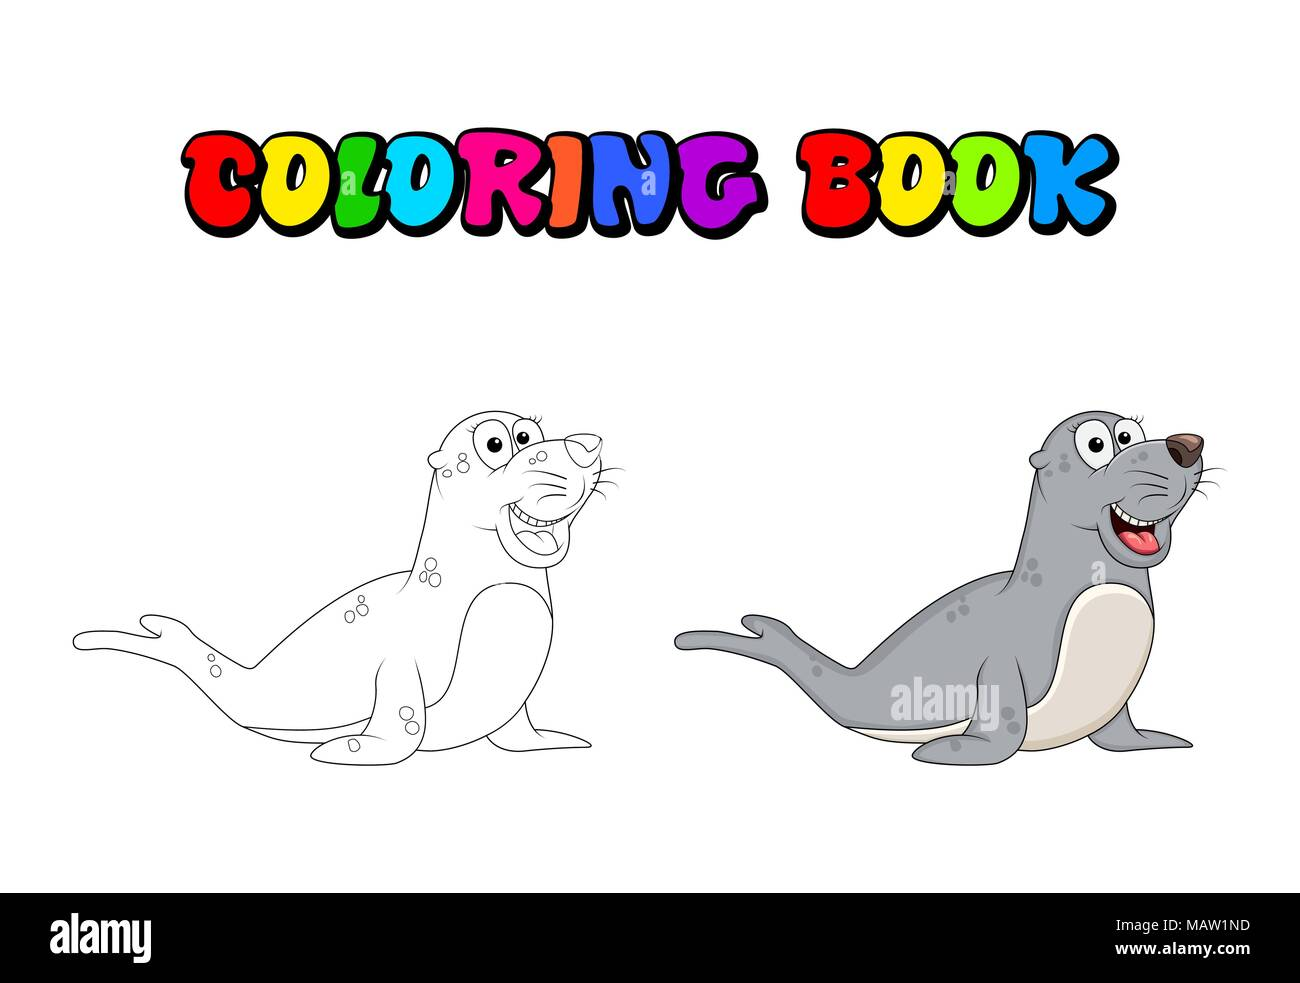 cartoon seal coloring book isolated on white background MAW1ND